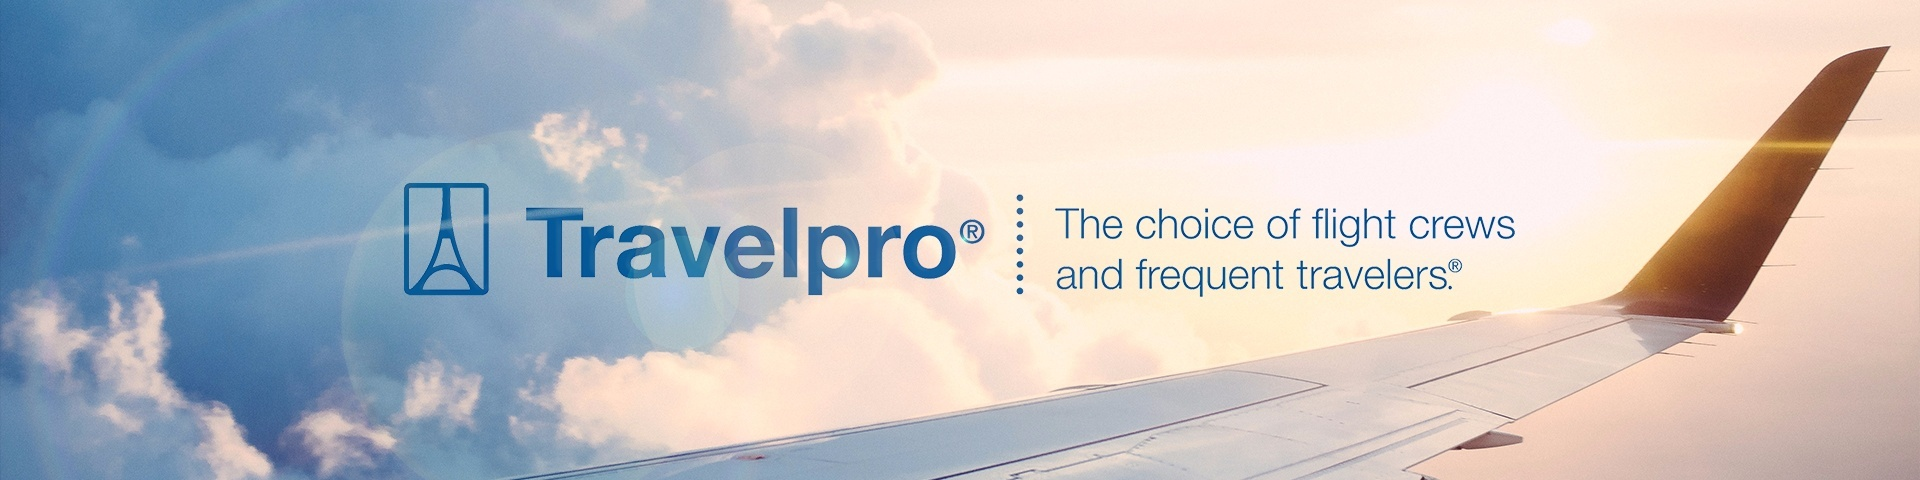 Travelpro Products